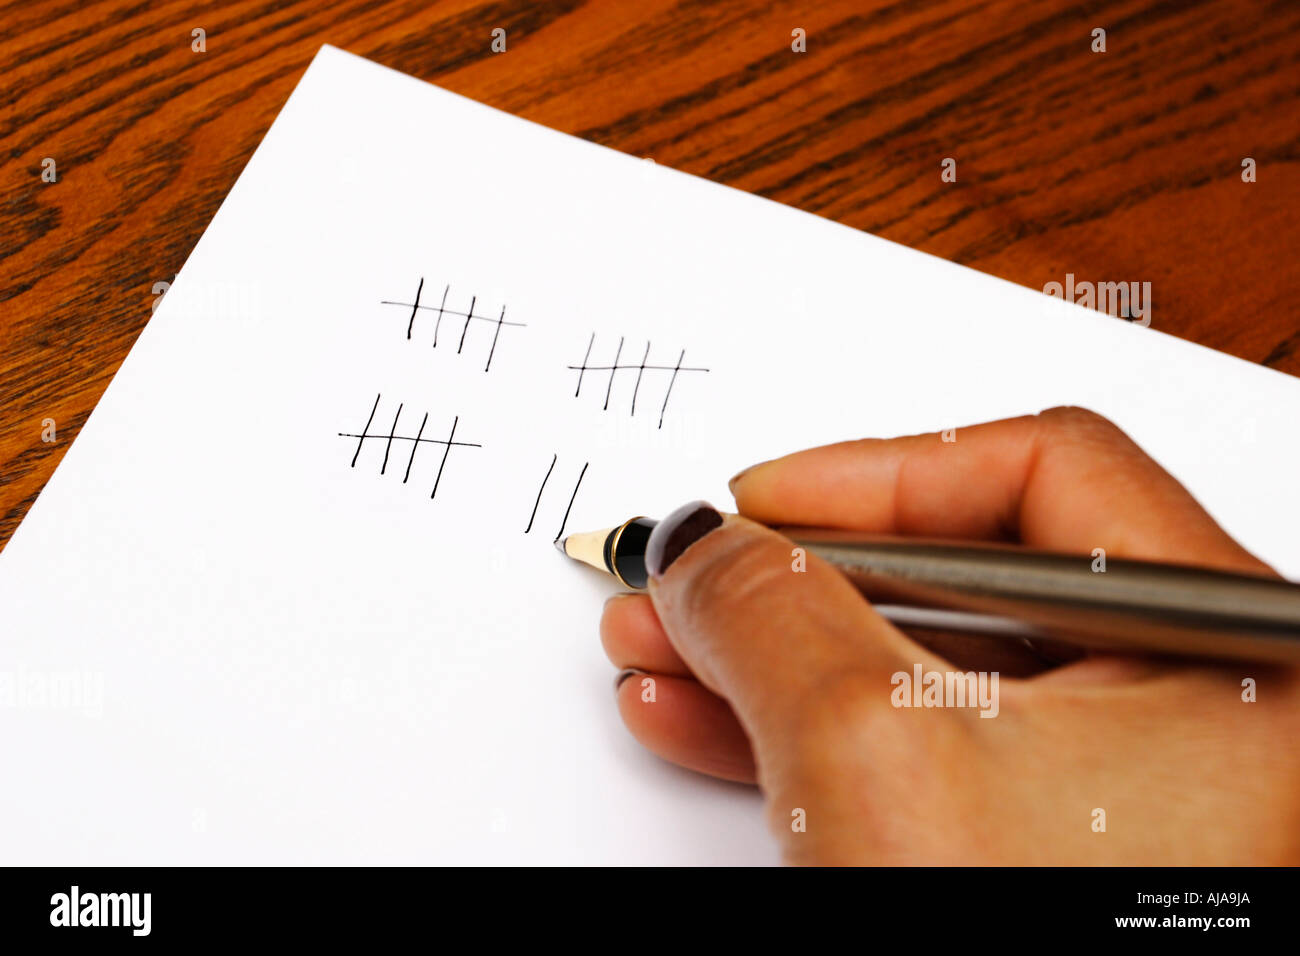 tally marks being written on paper stock photo royalty image stock photo tally marks being written on paper